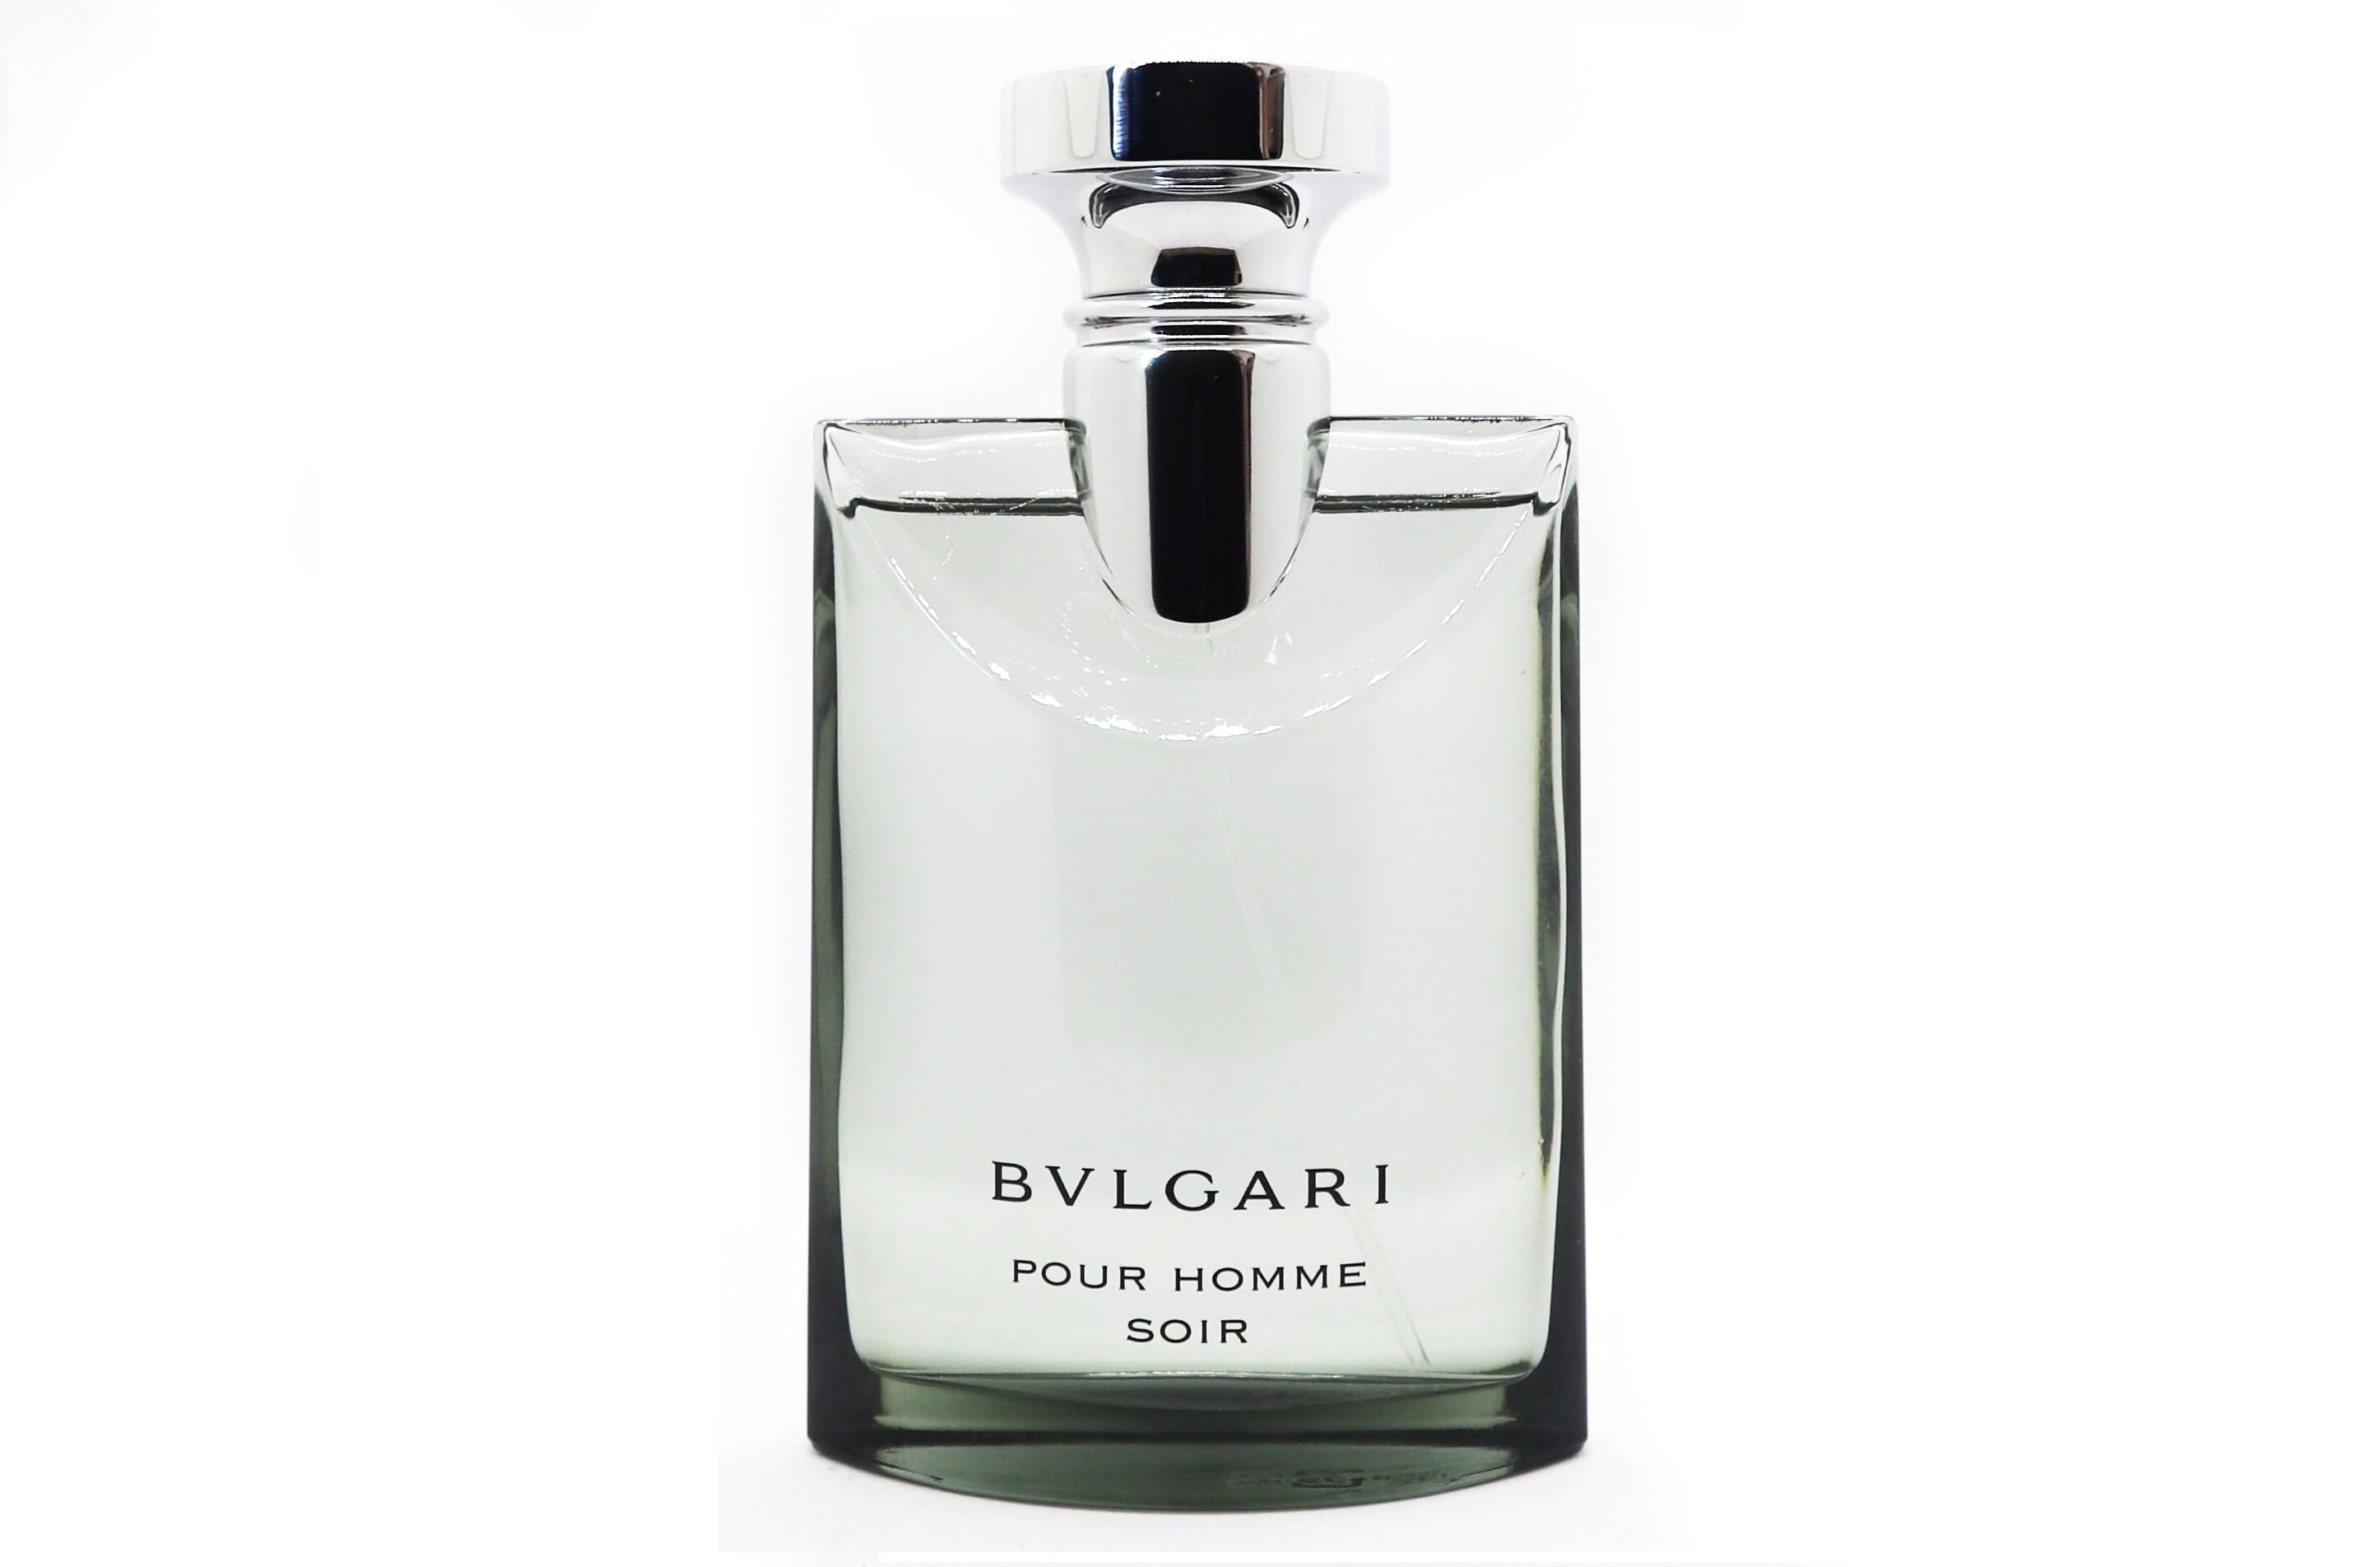 online store 7dc4a c5be8 Bvlgari - Pour Homme Soir, (ブルガリ - プールオム ソワール)